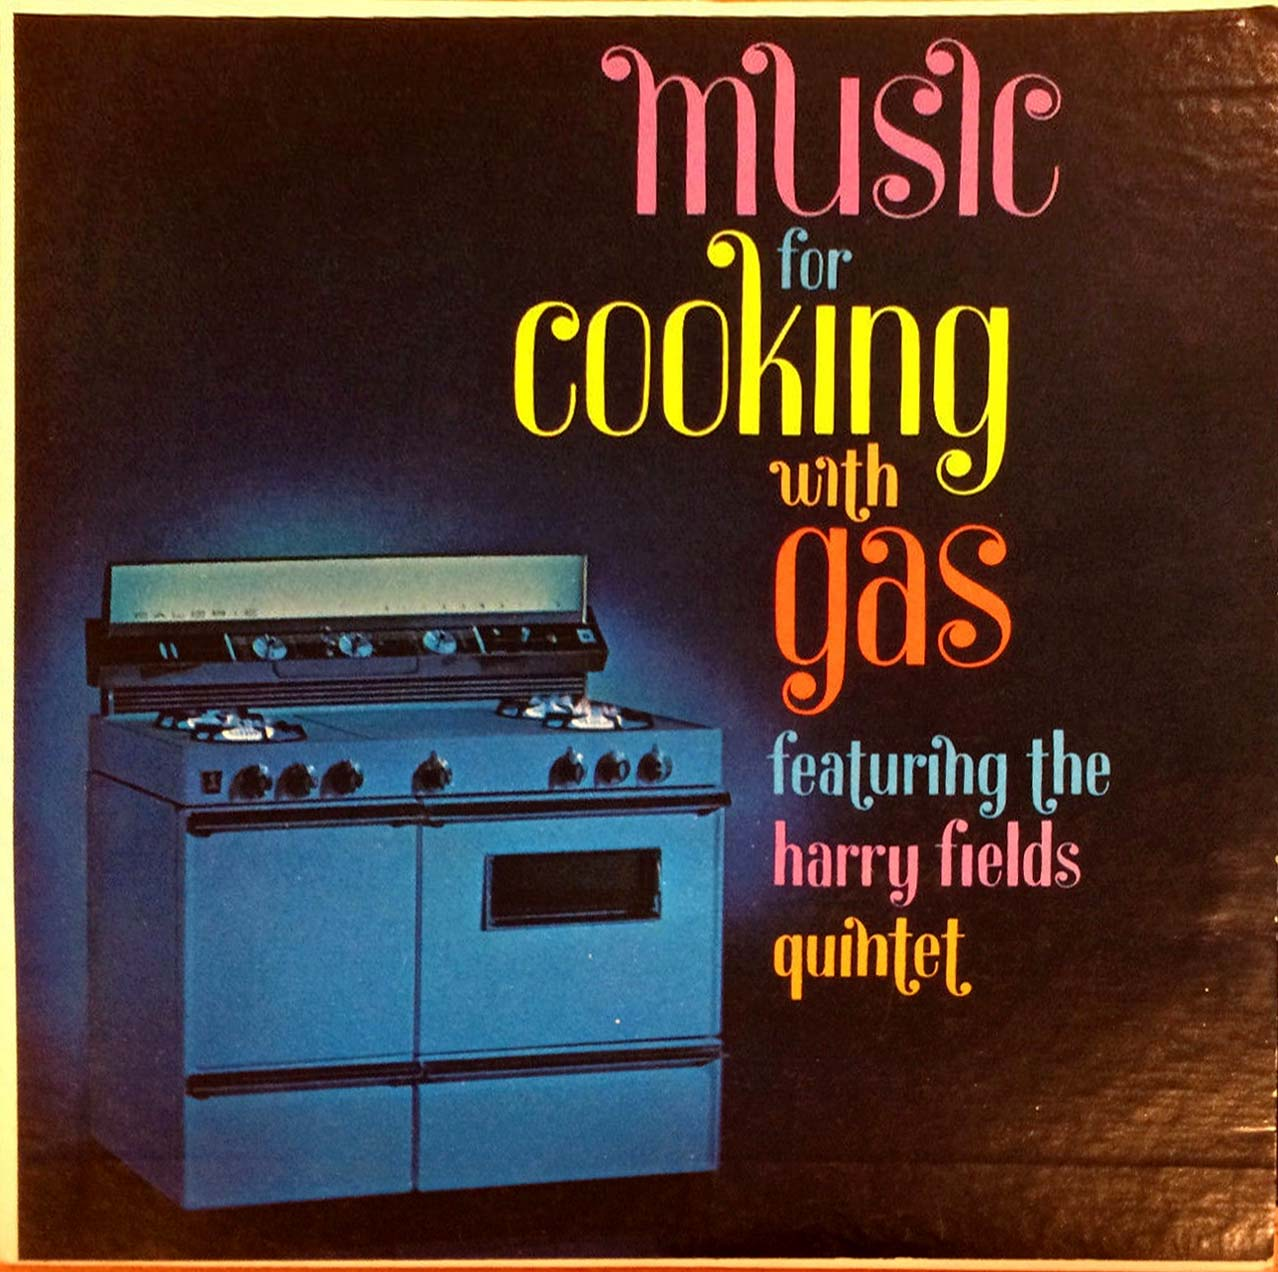 music for cooking with gas